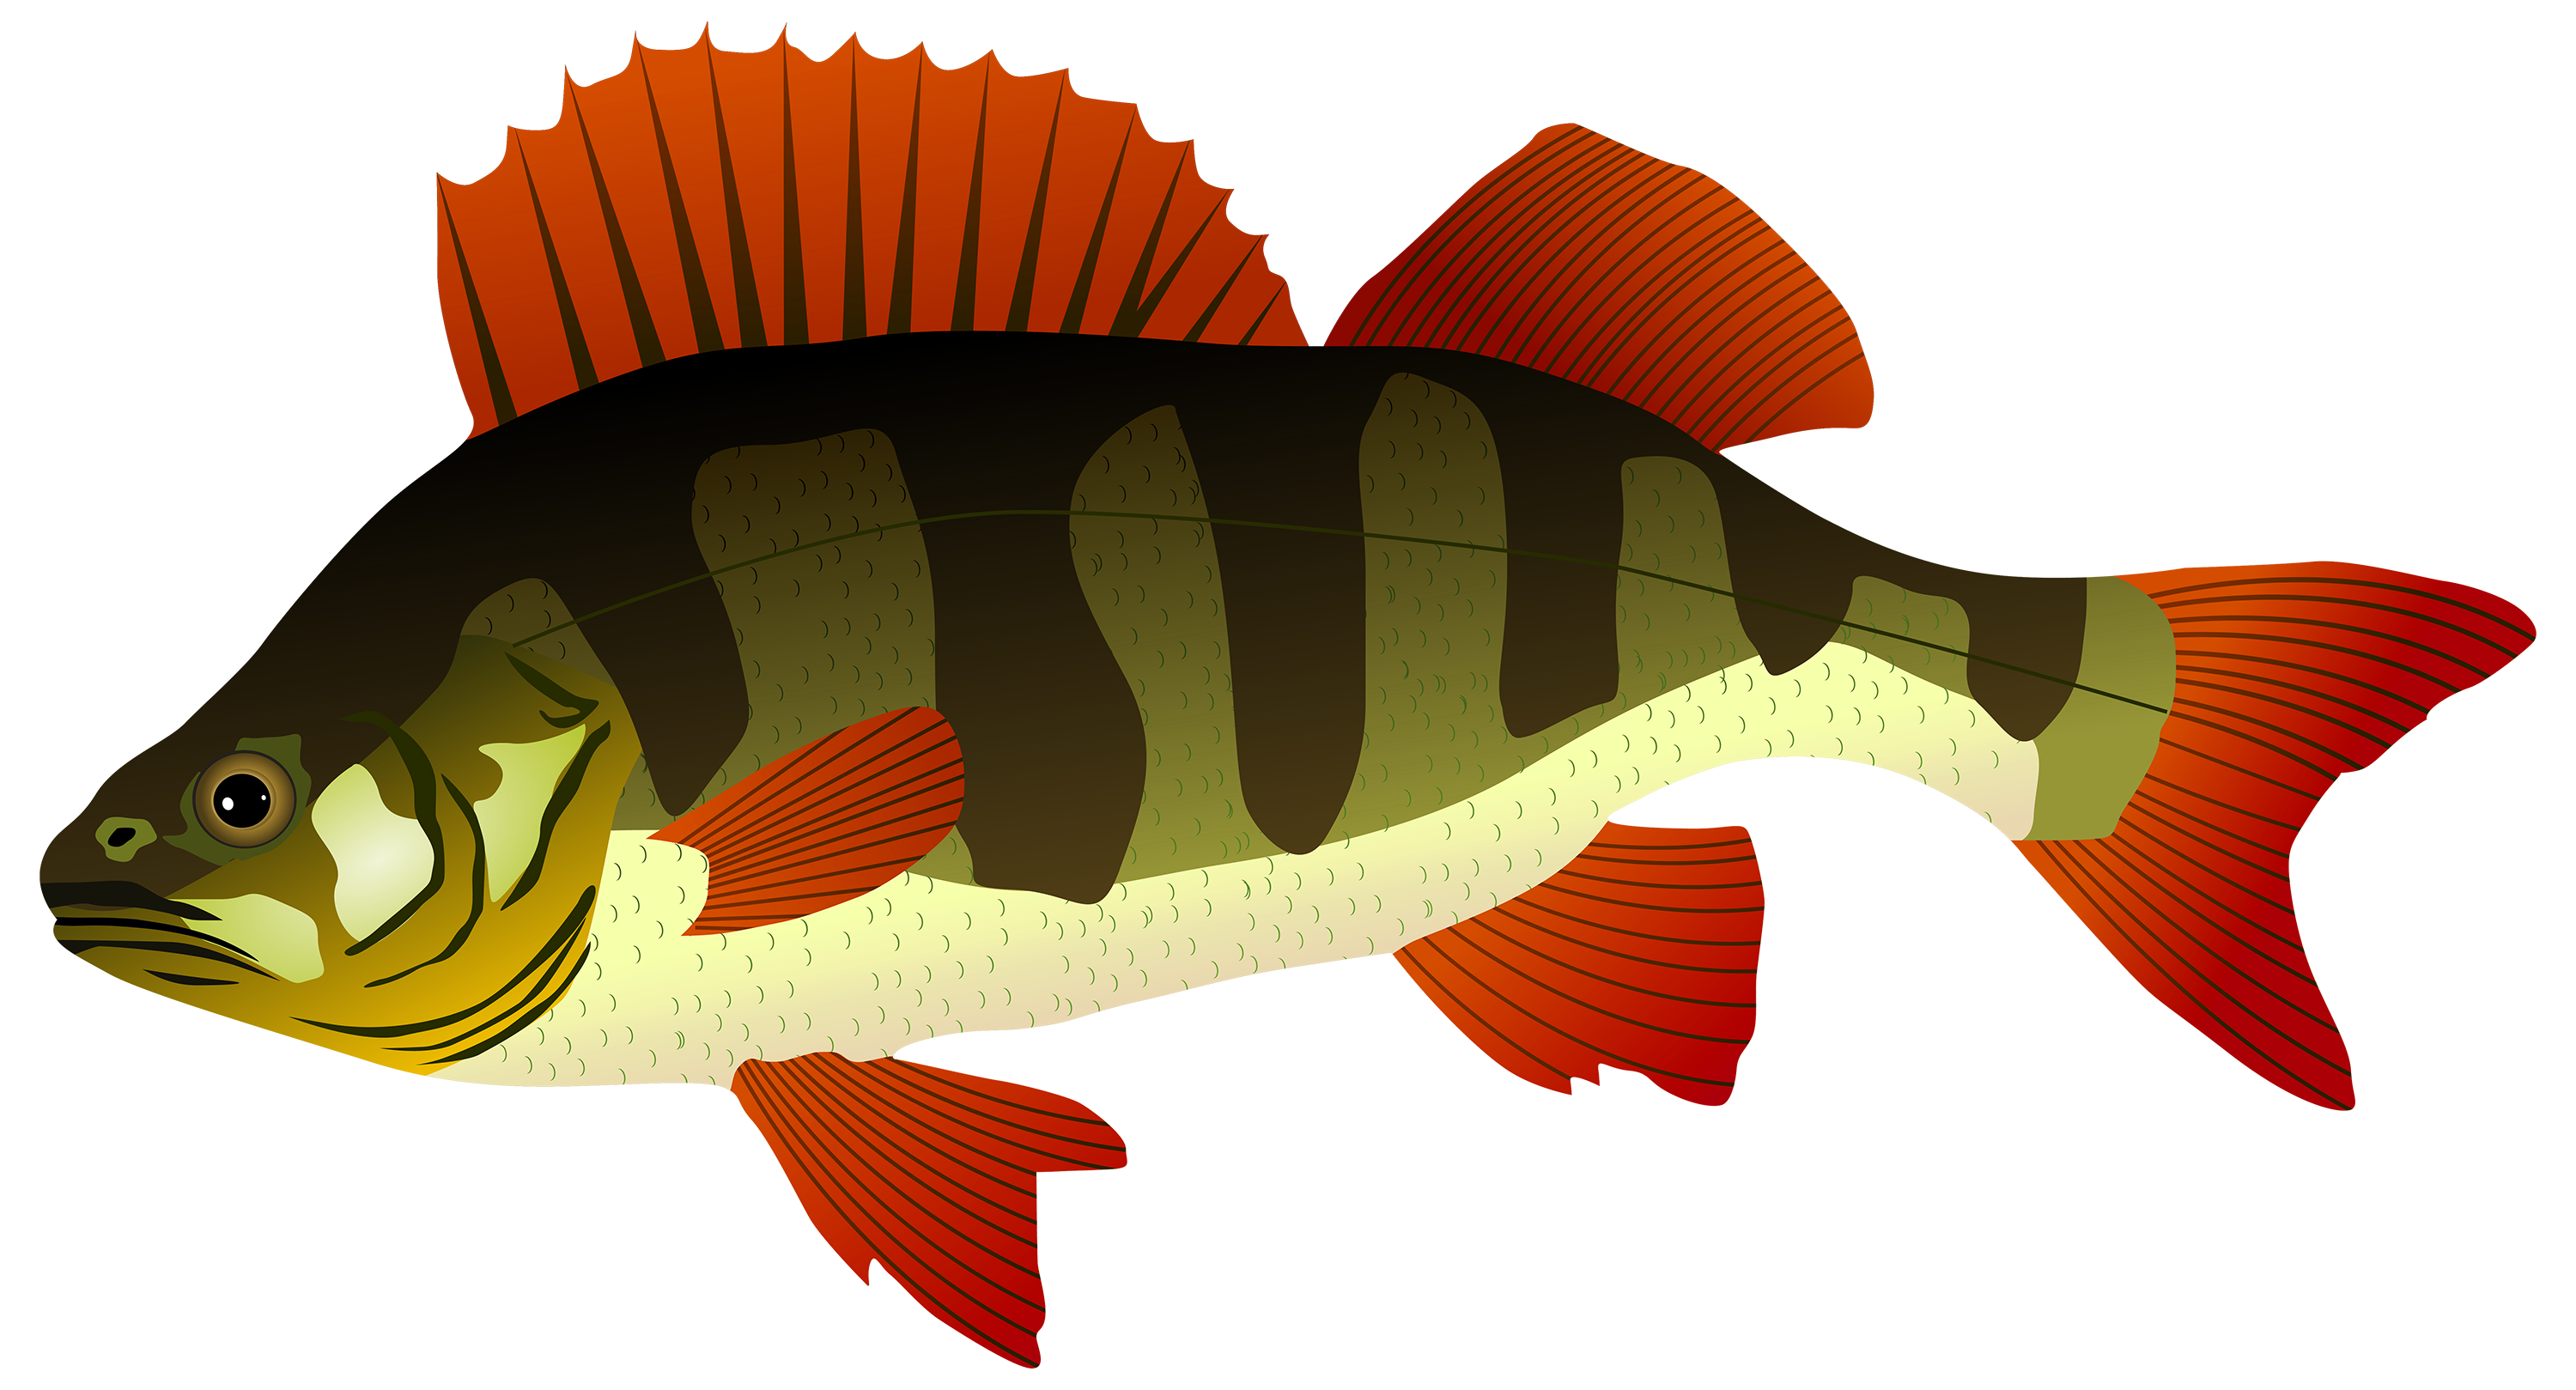 1fish2fish 3 fish clipart image freeuse download Bass Fish Clipart at GetDrawings.com | Free for personal use Bass ... image freeuse download